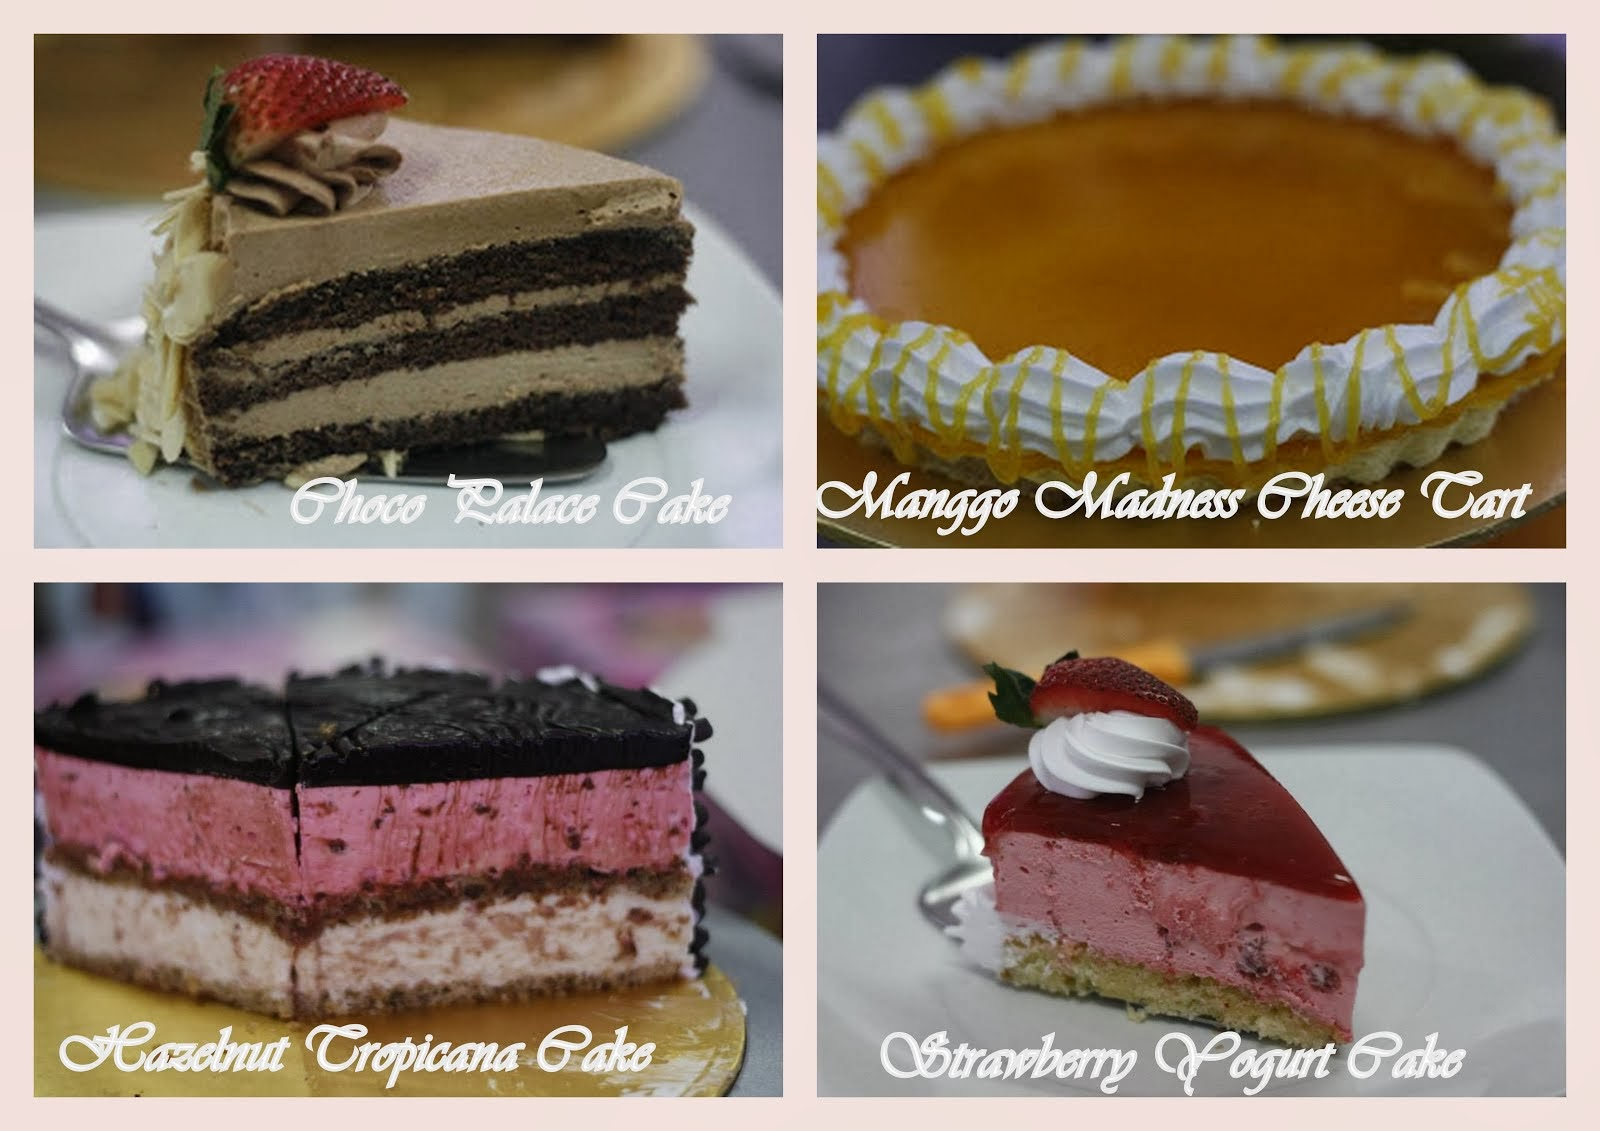 Hazelnut Tropicana Cake, Manggo Madness Cheese Tart, Strawberry Yogurt Cake, Choco Palace Cake